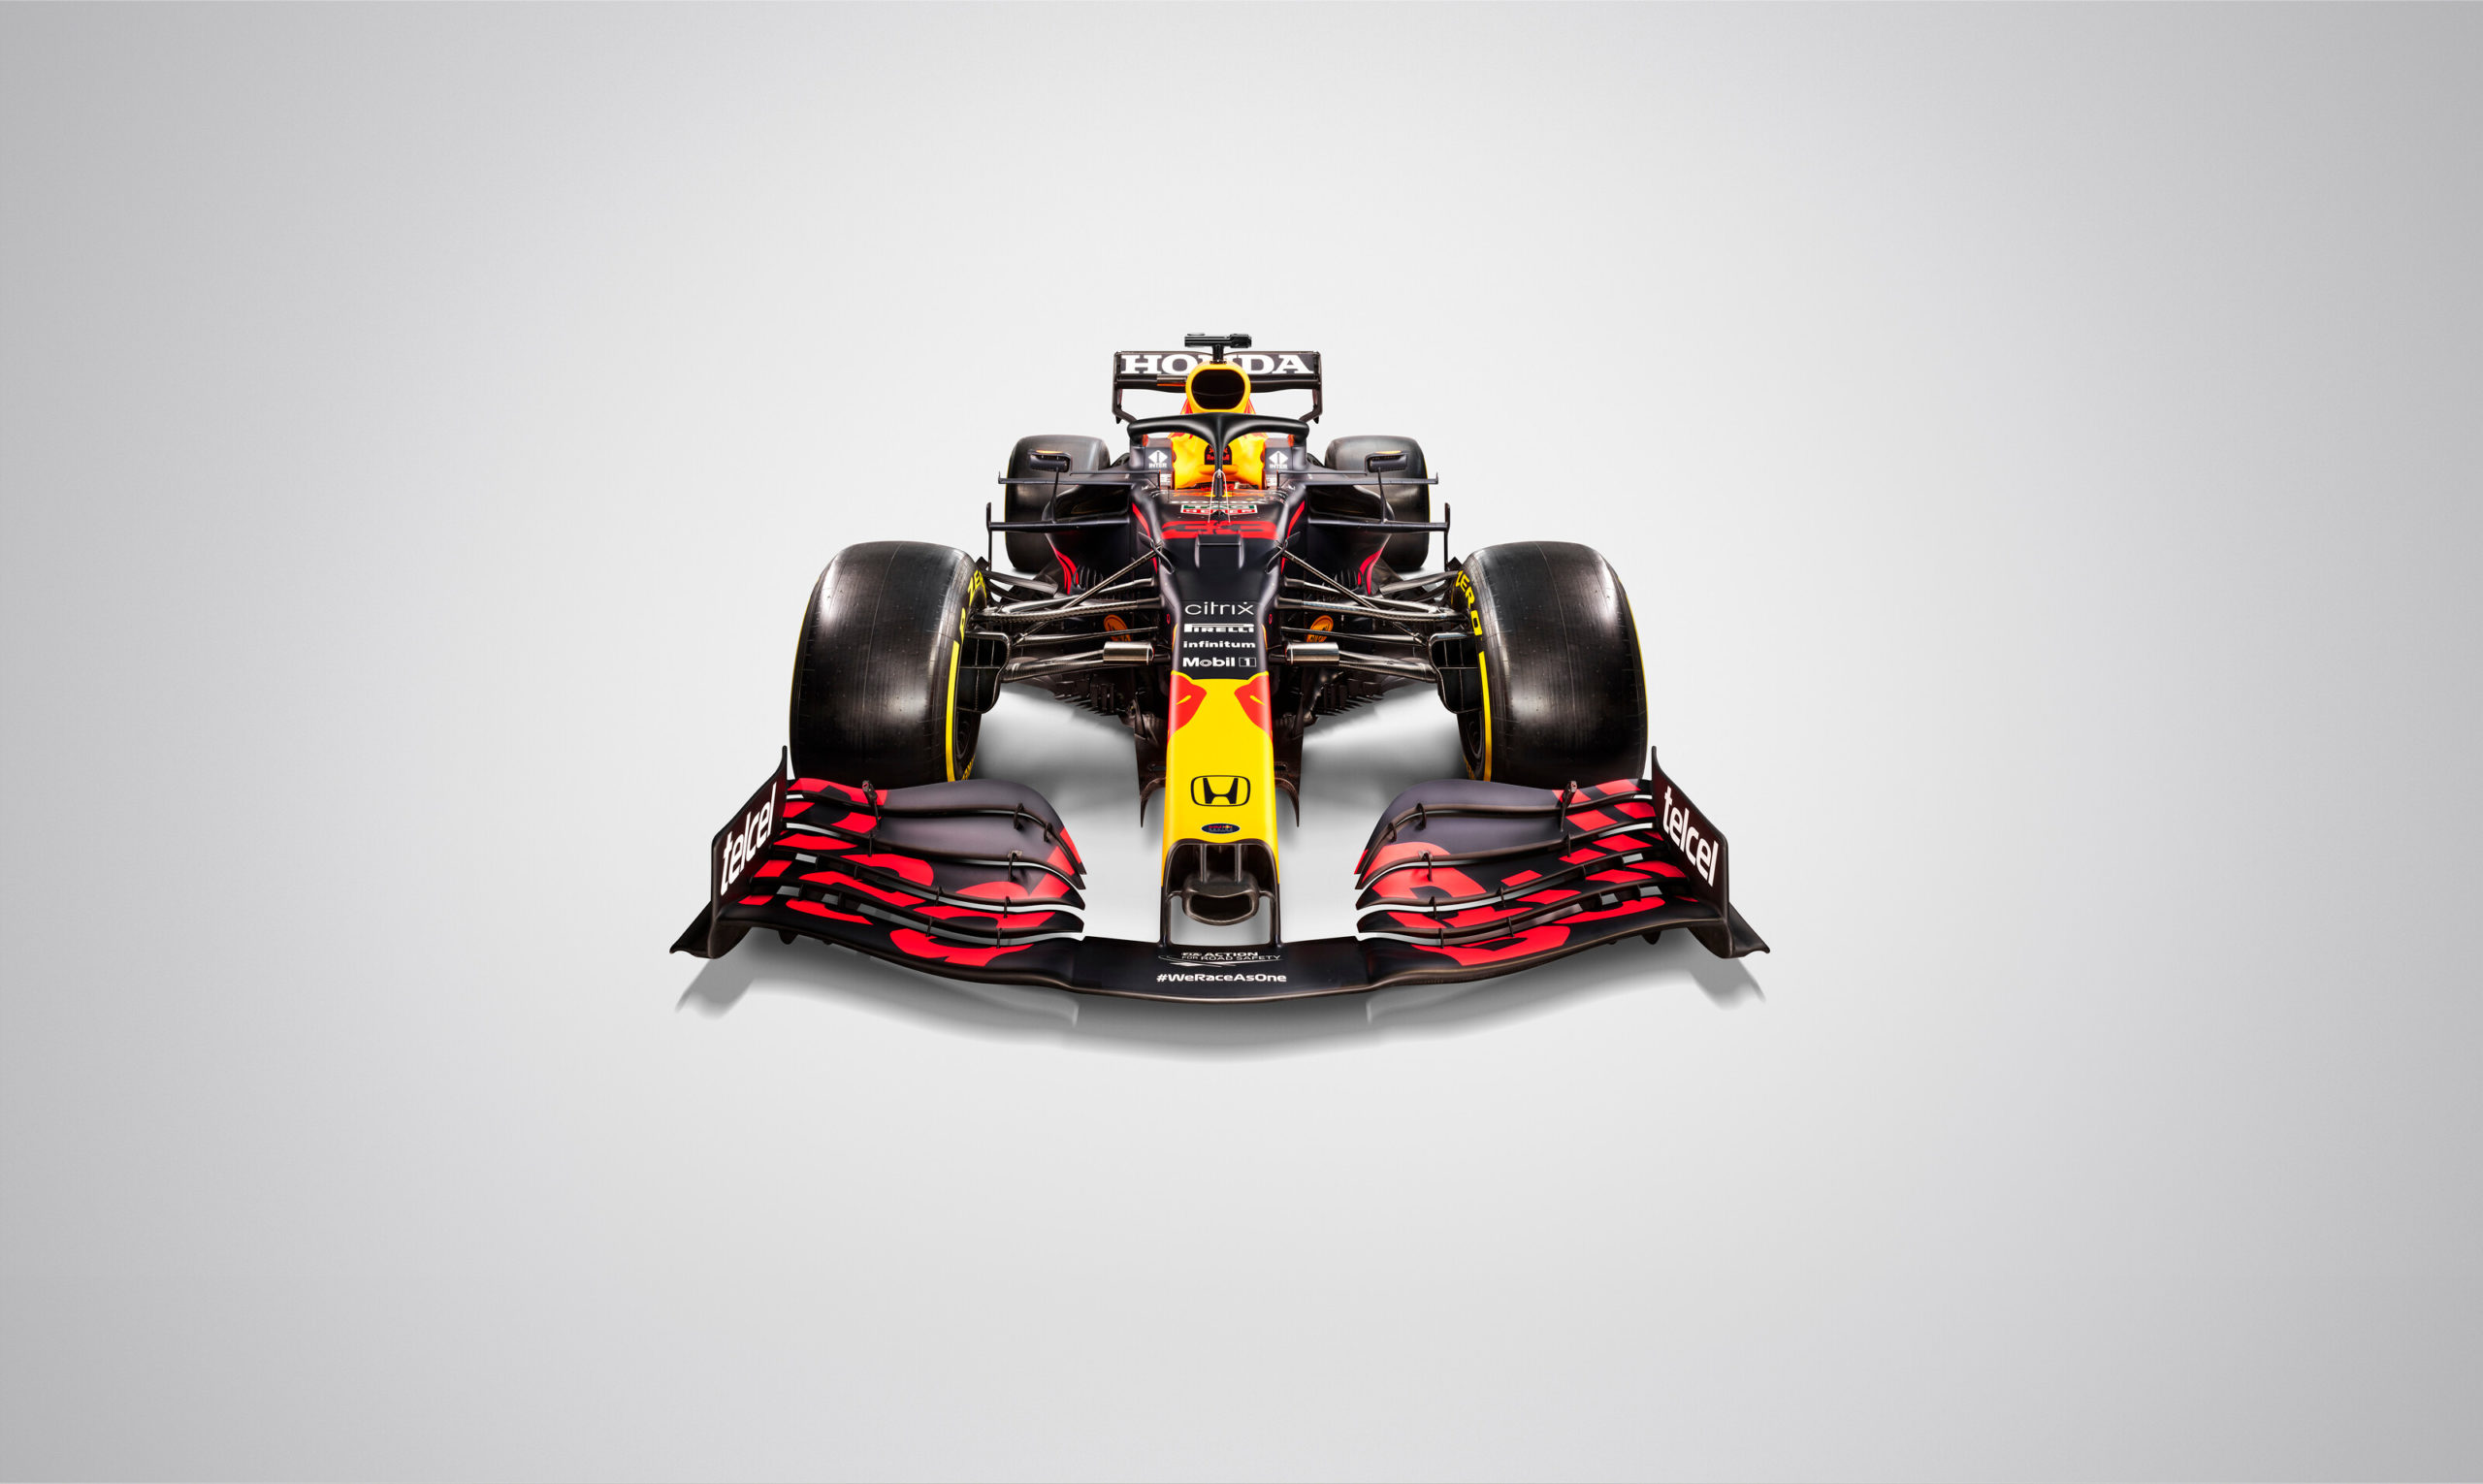 Thomas Butler / Red Bull Content Pool // SI202102230042 // Usage for editorial use only //